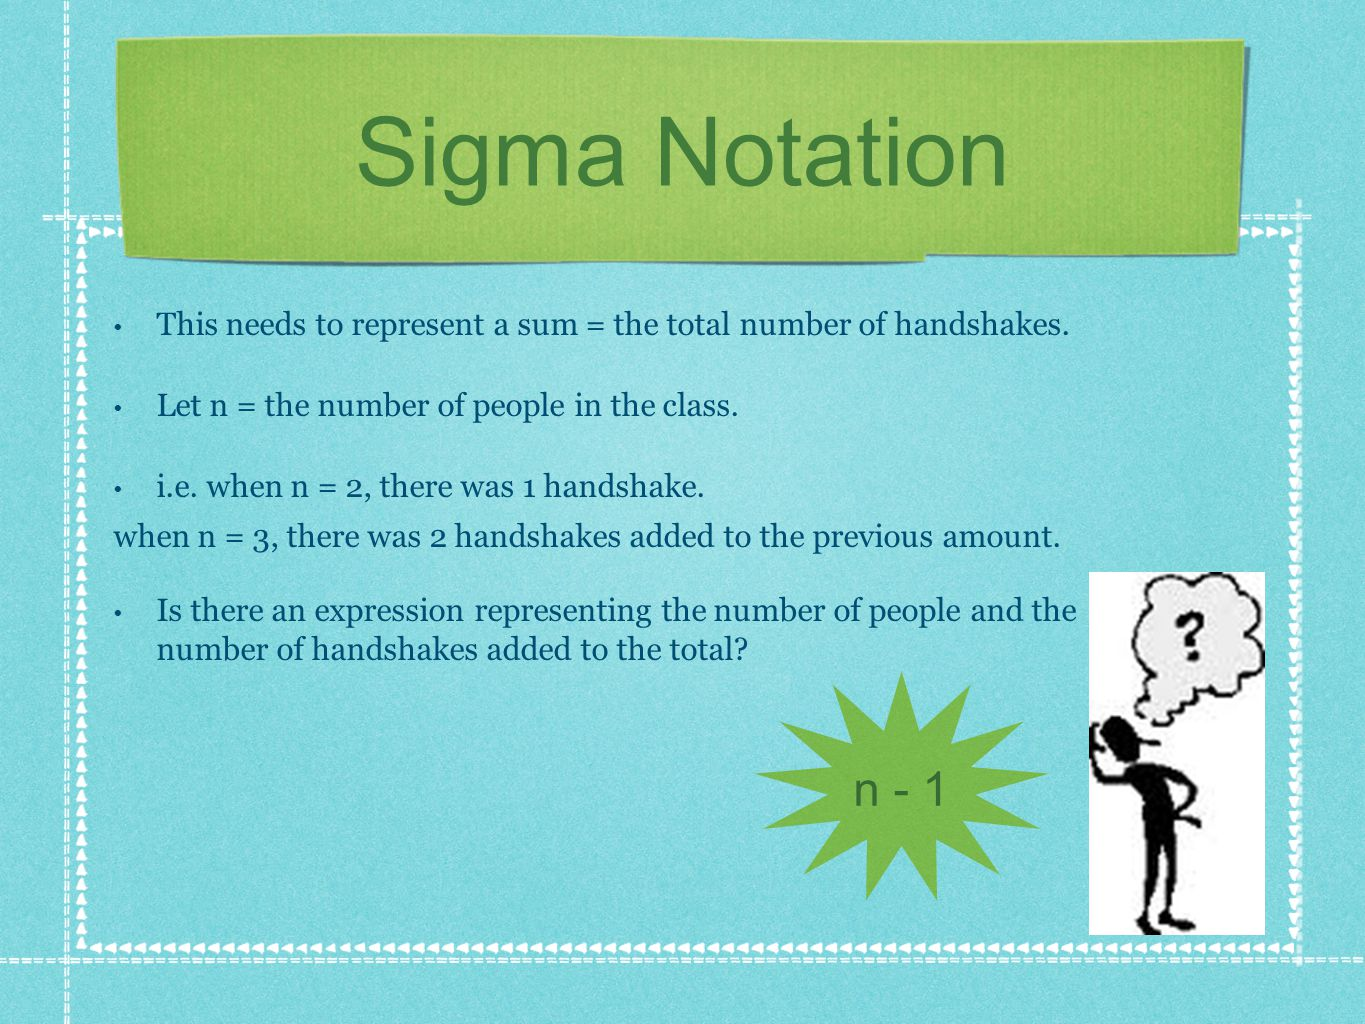 Sigma Notation This needs to represent a sum = the total number of handshakes.